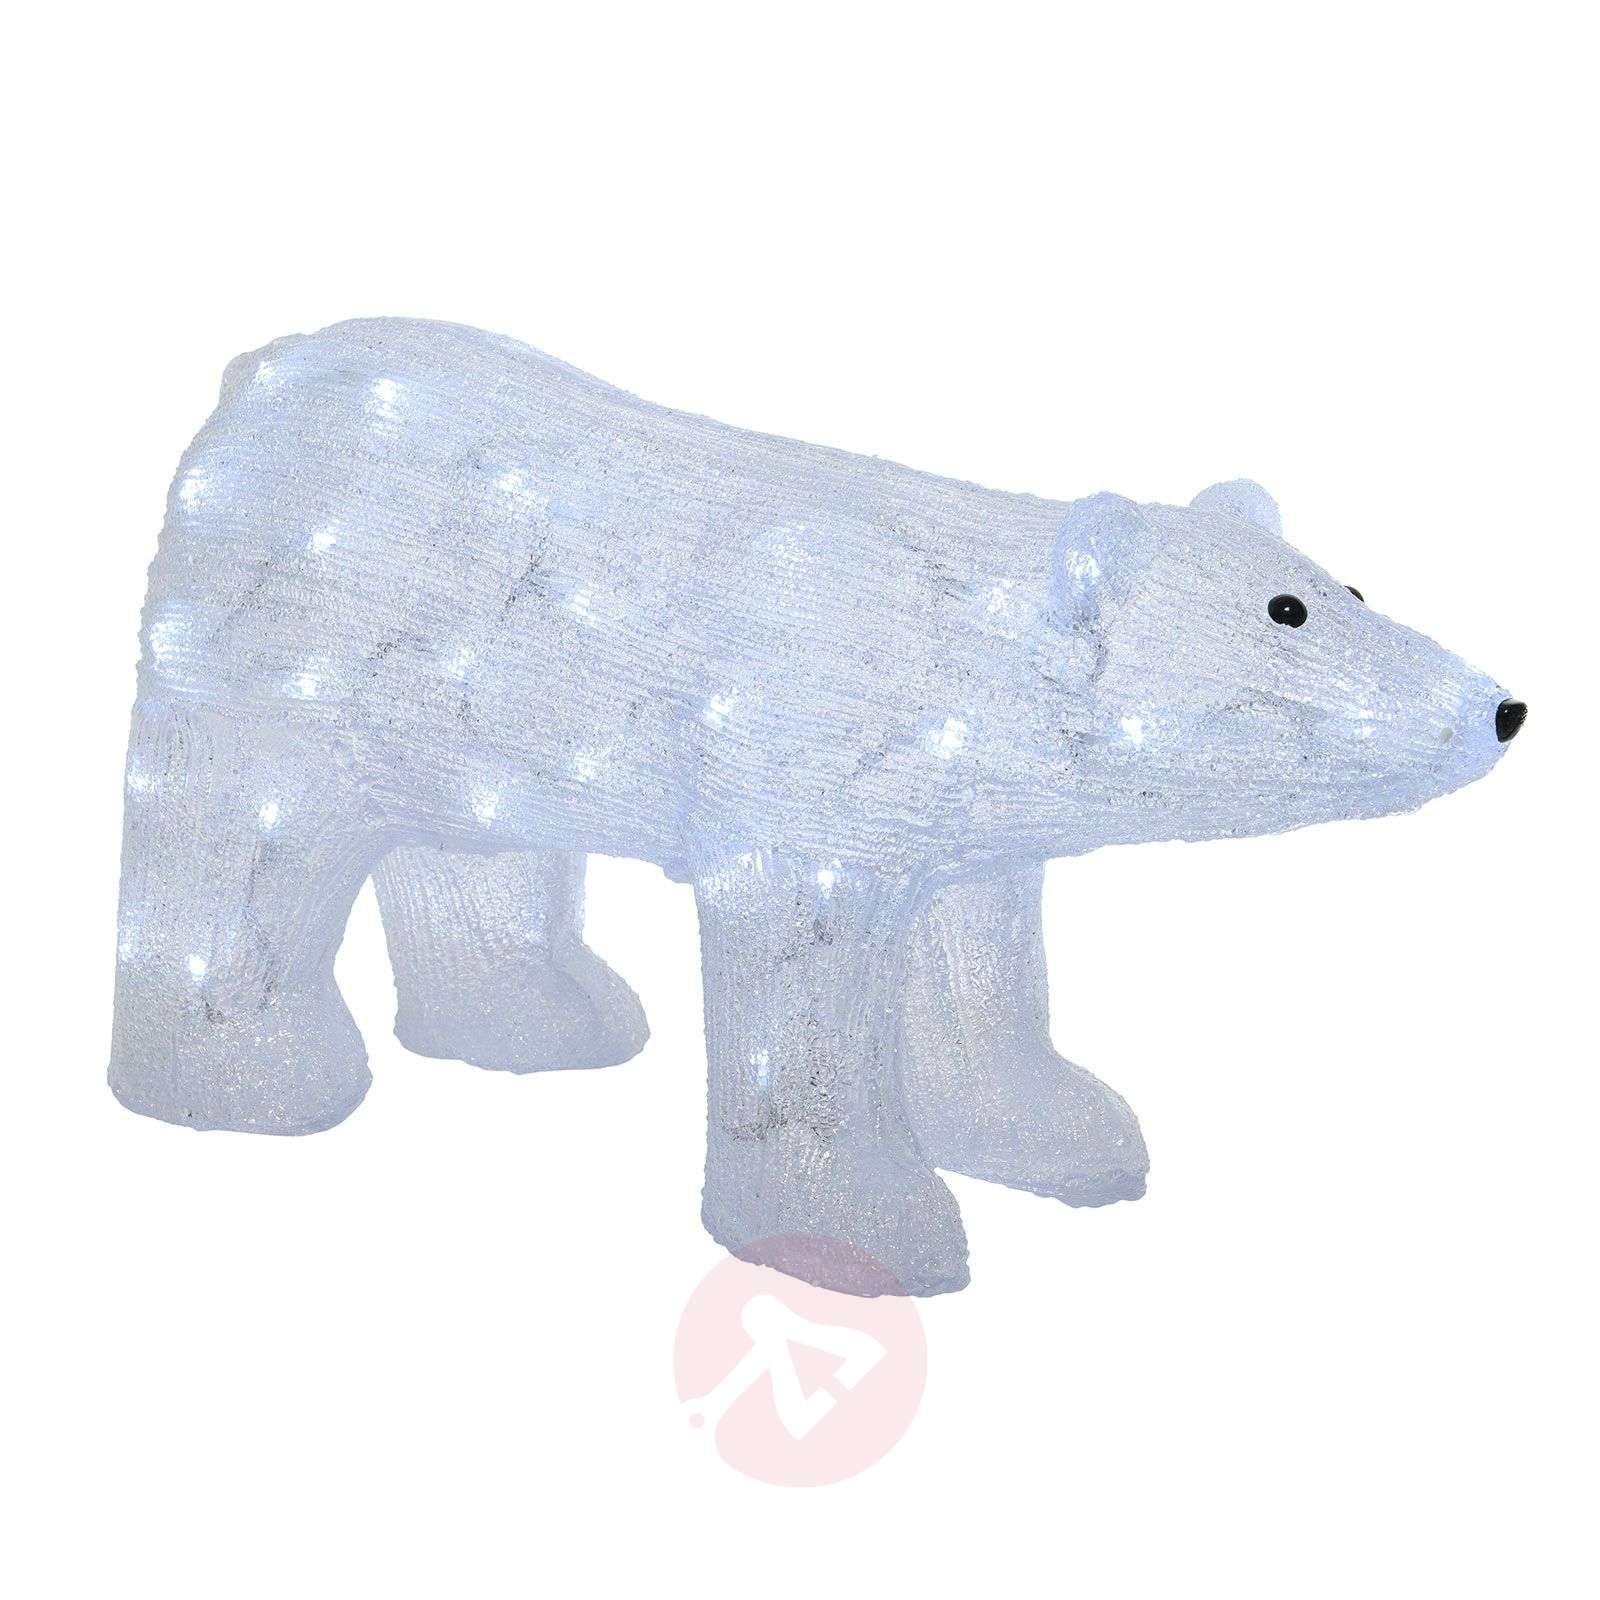 Figurine déco LED Ours polaire, ext., transparent-5527203-01